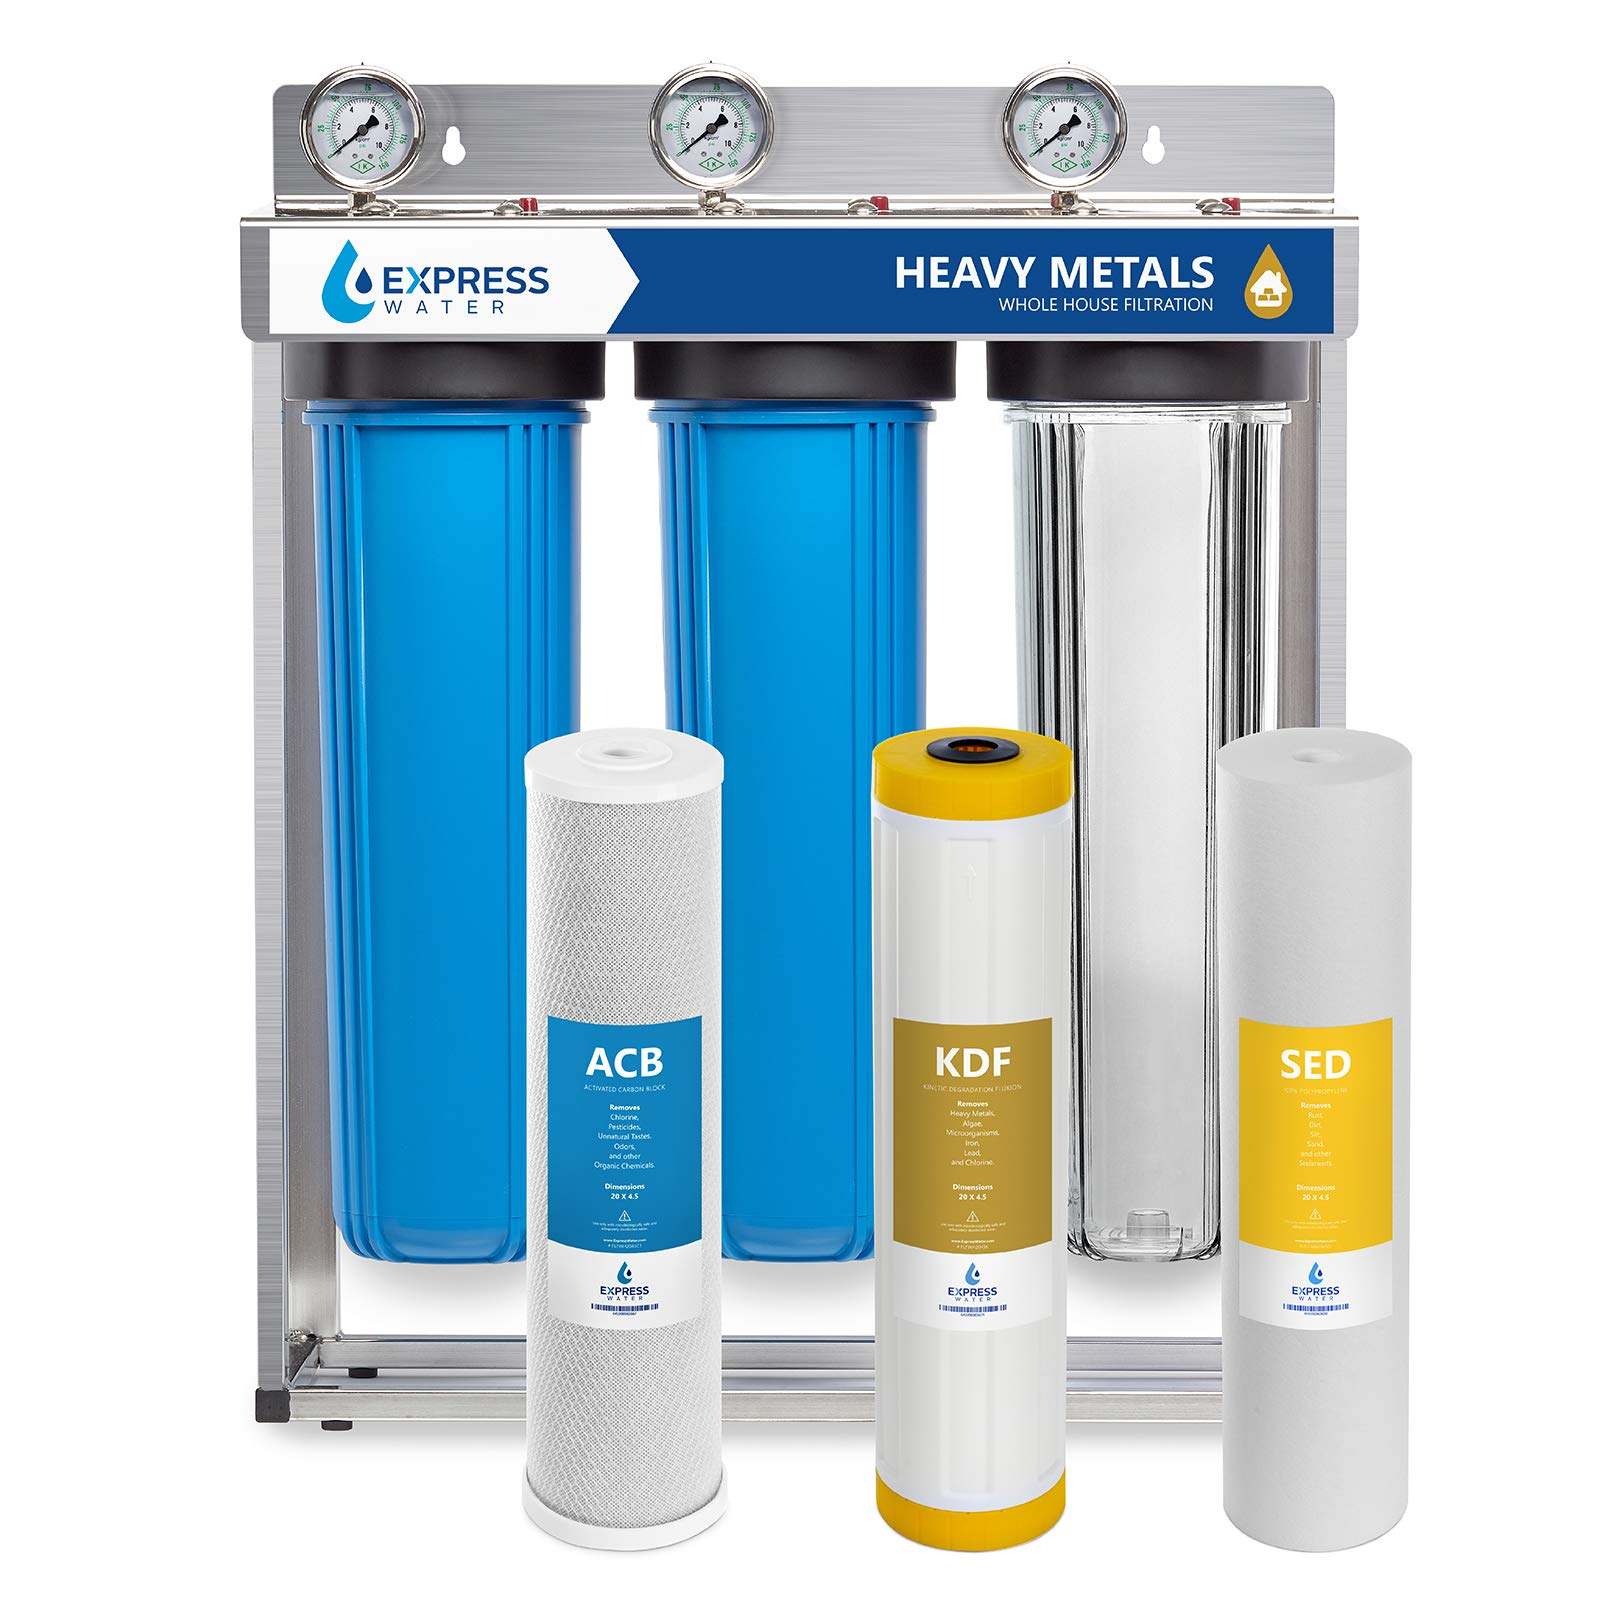 Express Water Heavy Metal Whole House Water Filter - 3 Stage Home Water Filtration System - Sediment, KDF, Carbon Filters - includes Pressure Gauges, Easy Release, and 1'' Inch Connections by Express Water